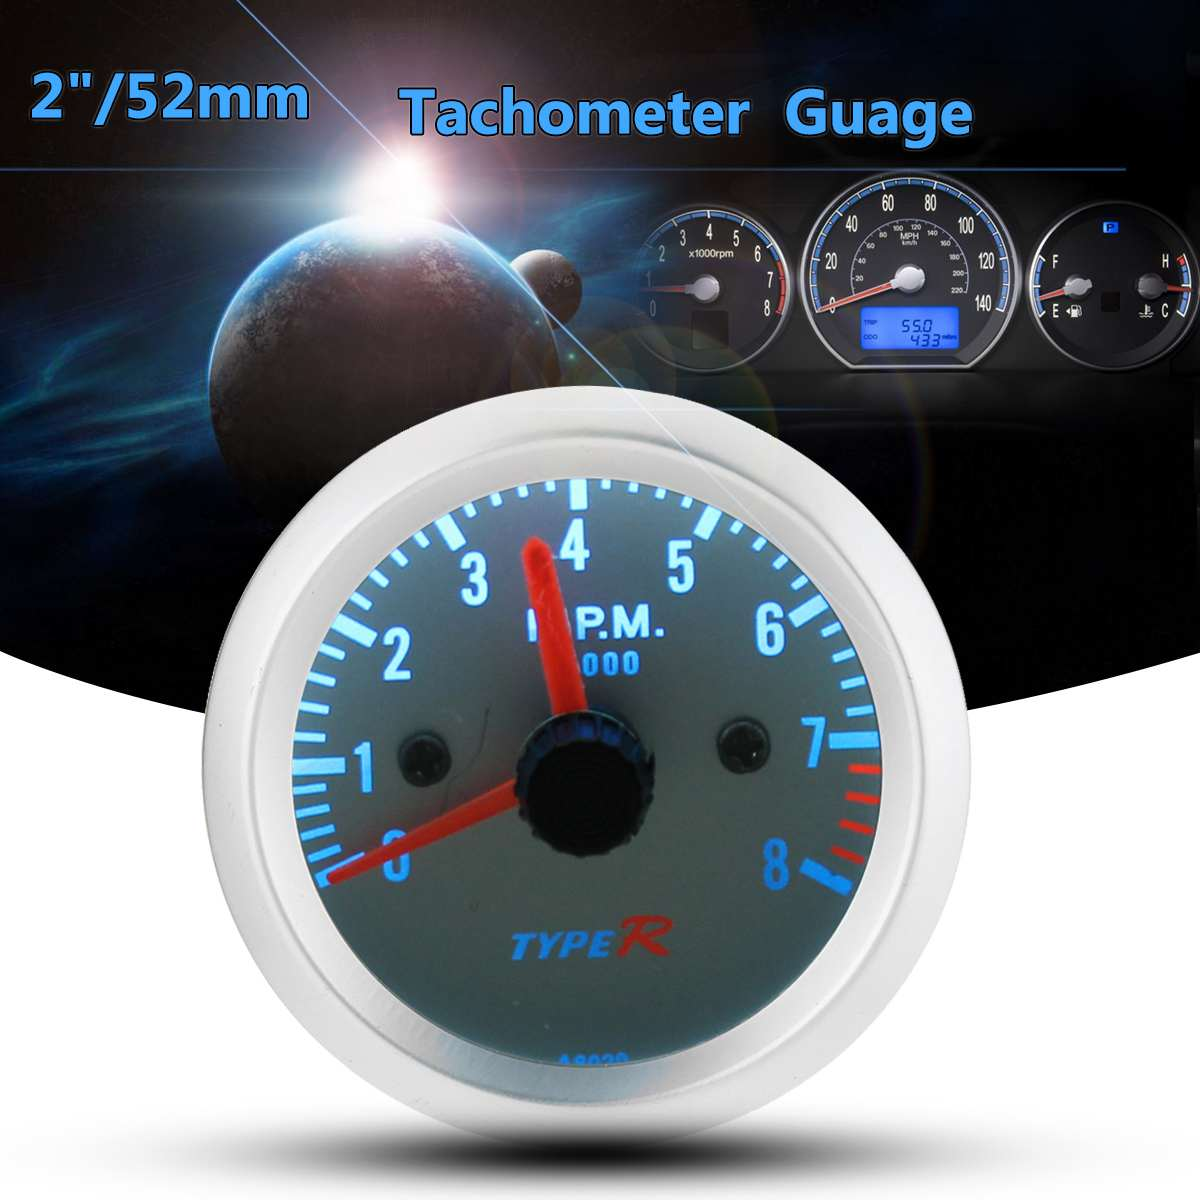 12V Universal 2 inch 52mm Blue LED Tacho 8000 RPM Tachometer for Pointer Gauge Meter12V Universal 2 inch 52mm Blue LED Tacho 8000 RPM Tachometer for Pointer Gauge Meter